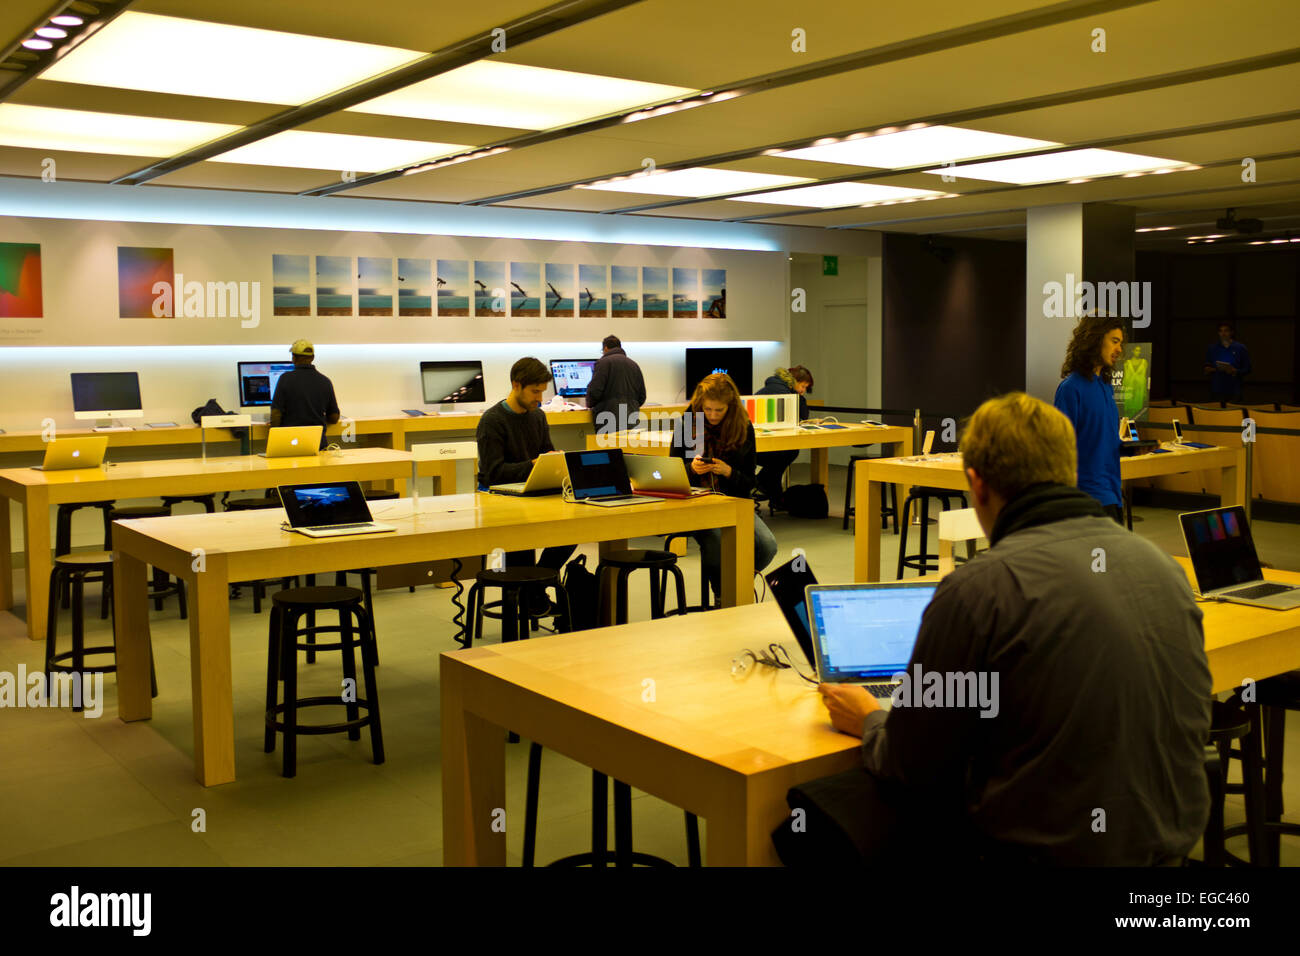 Apple store,Very Busy store where large numbers of Apple Products are sold,Iphone 6 plus,Ipad Air 2,235 Regent Street,London Stock Photo